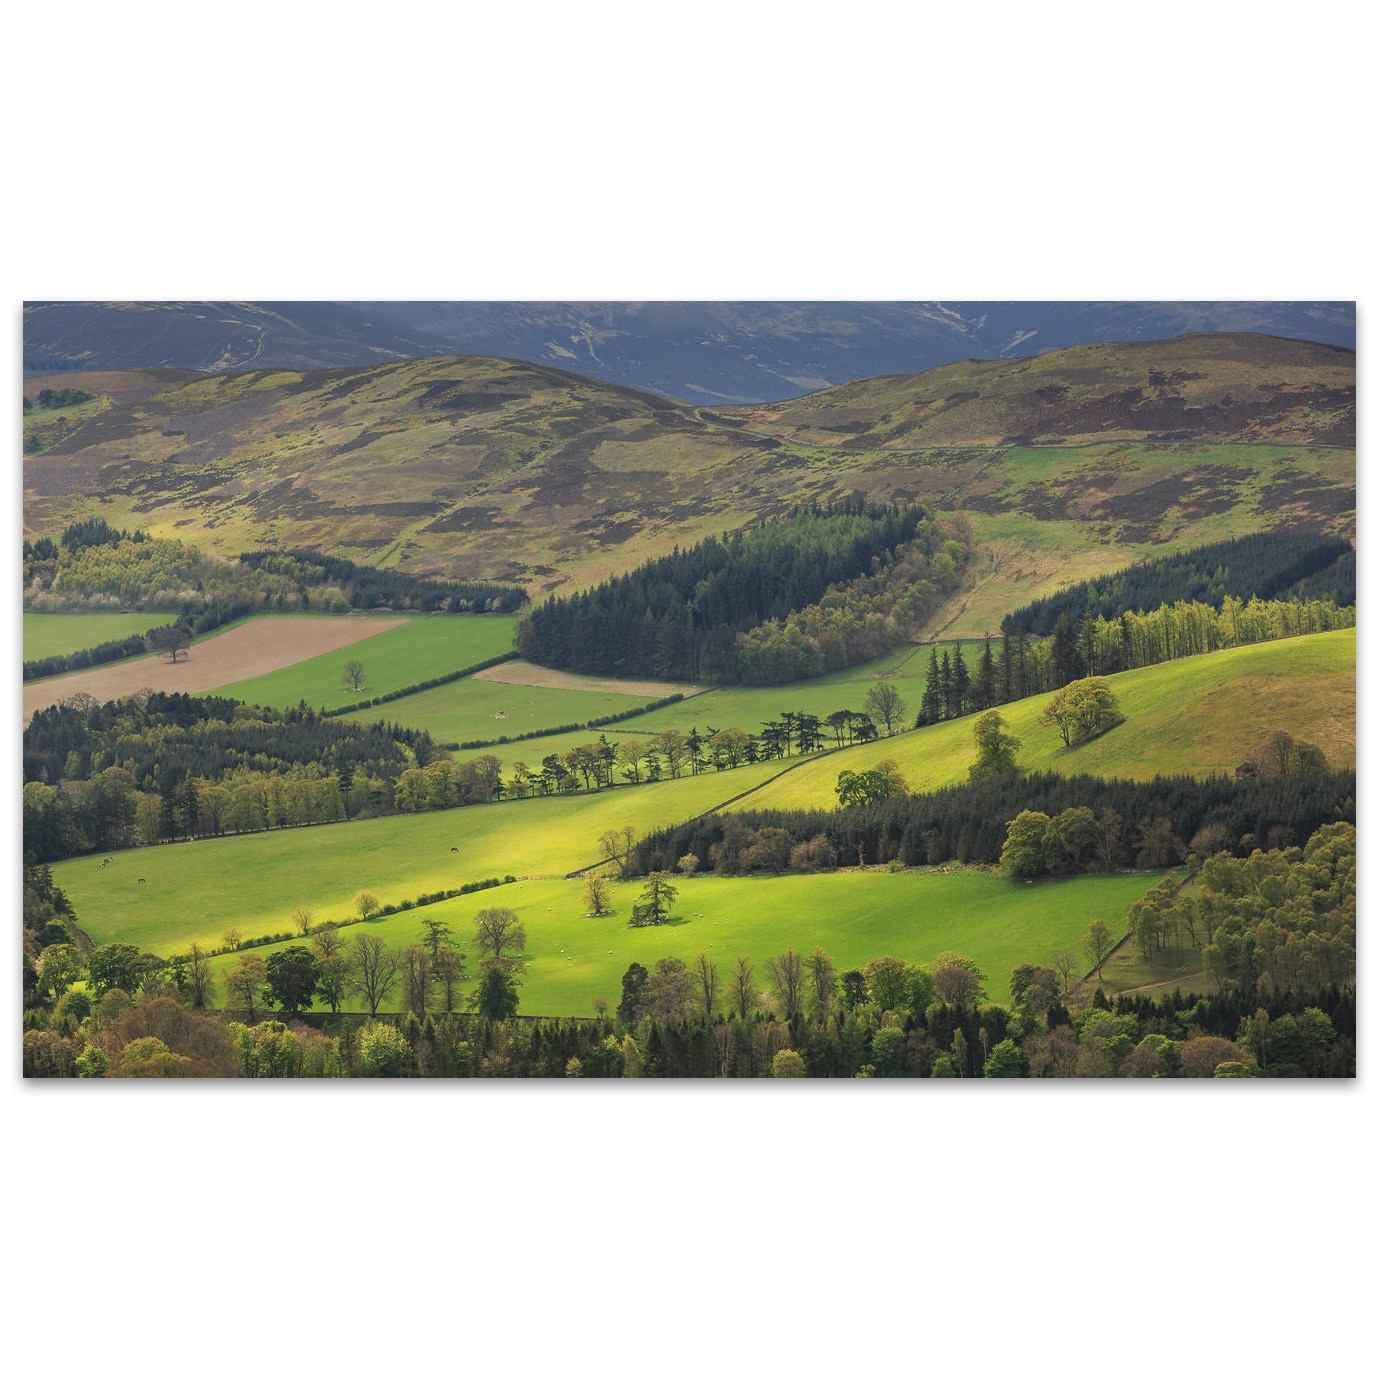 La Tweed Valley dans les Scottish Borders